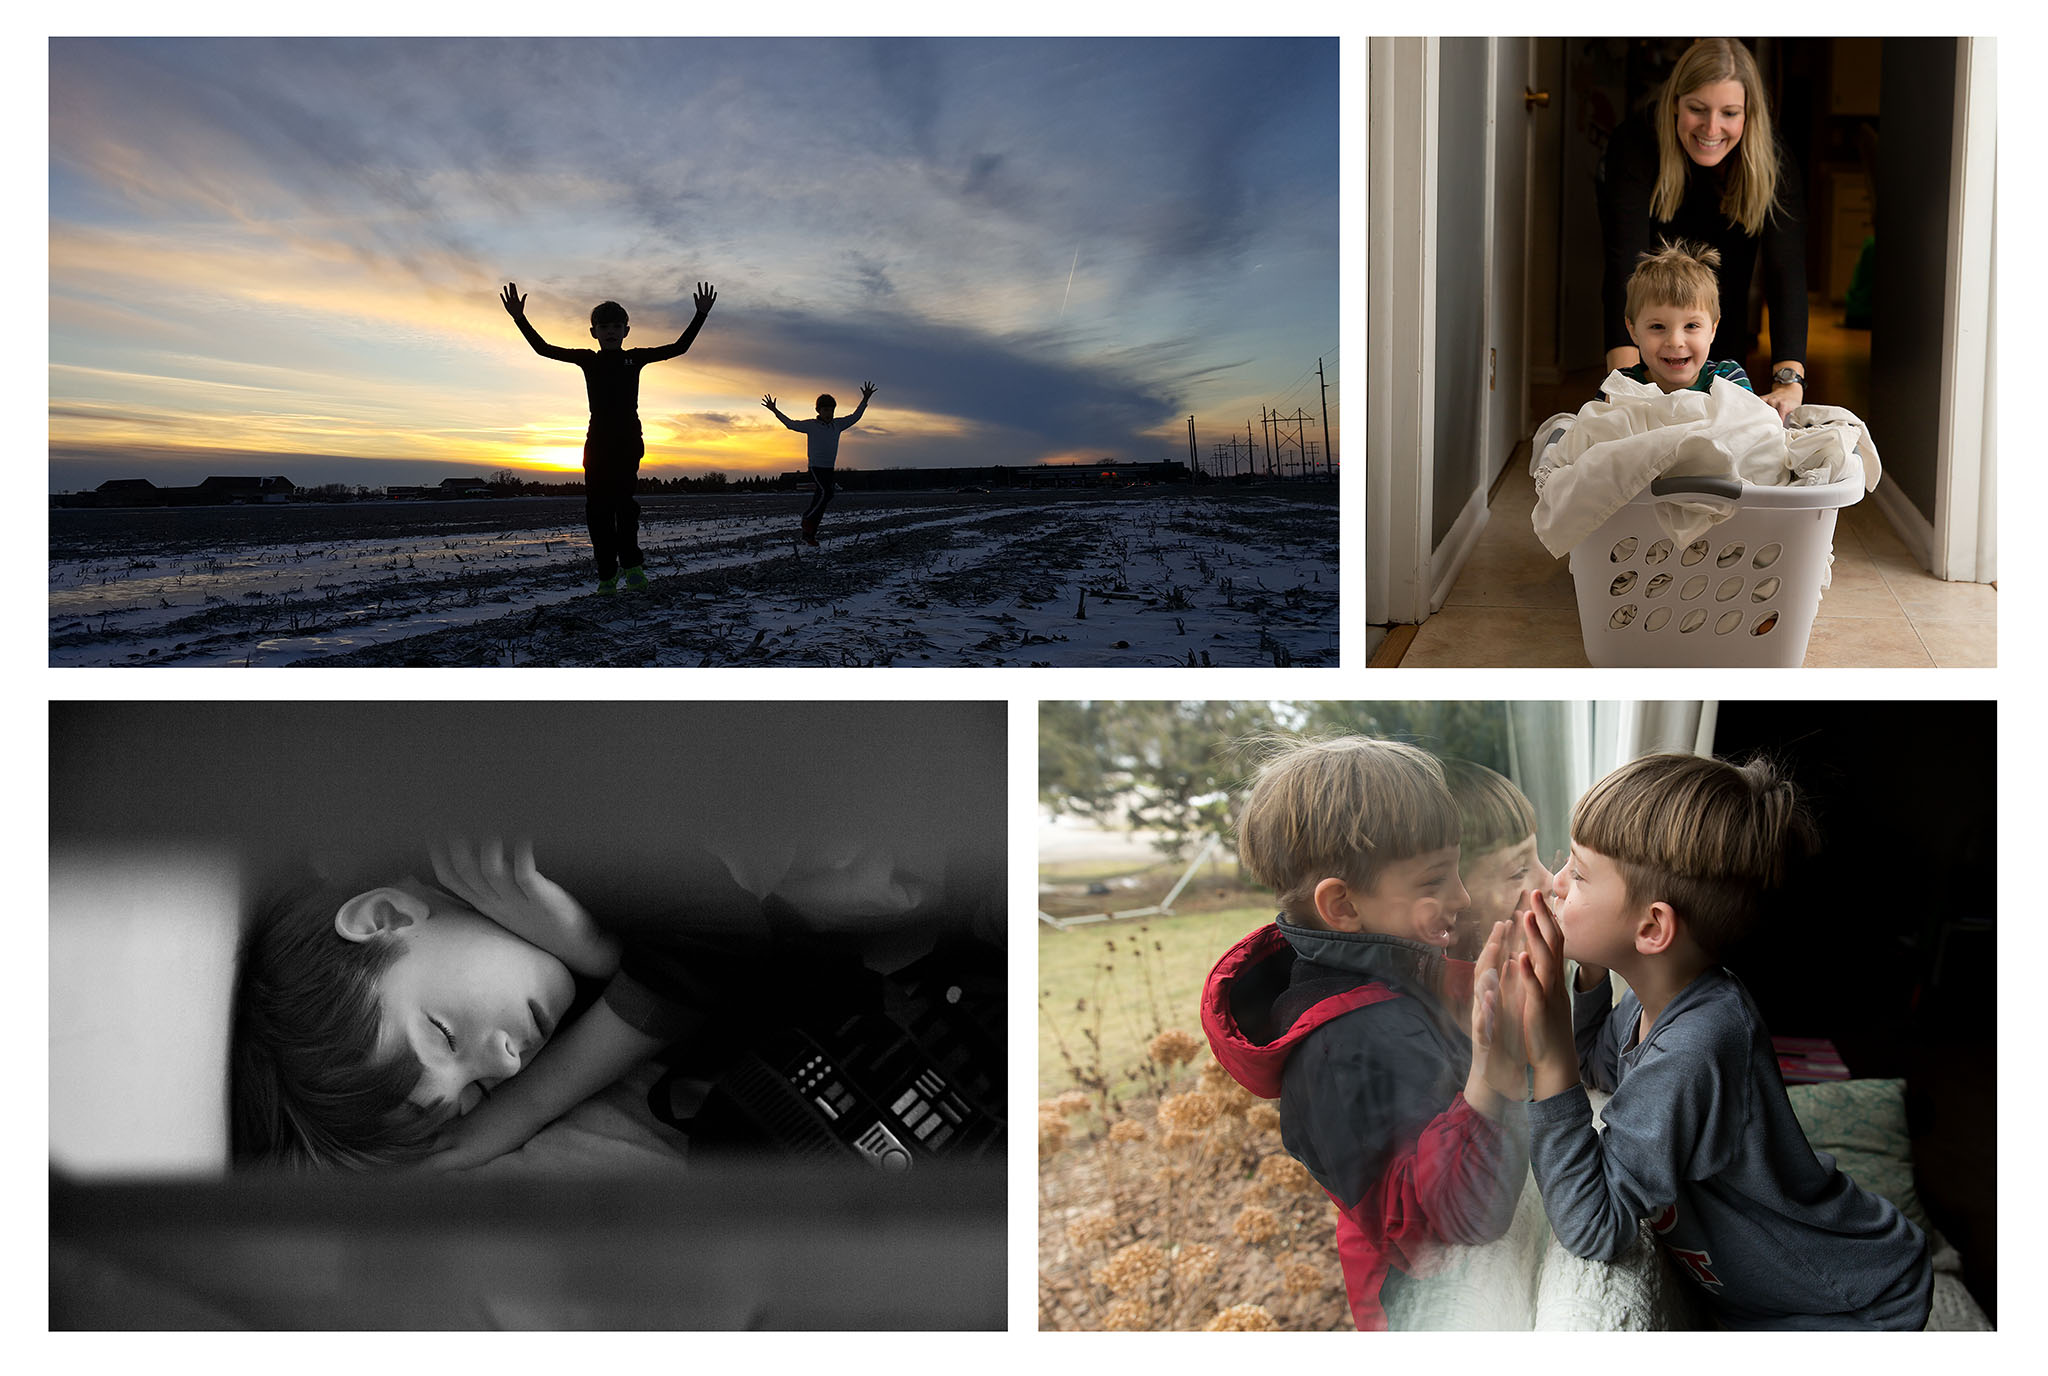 Four pictures of kids in everyday moments